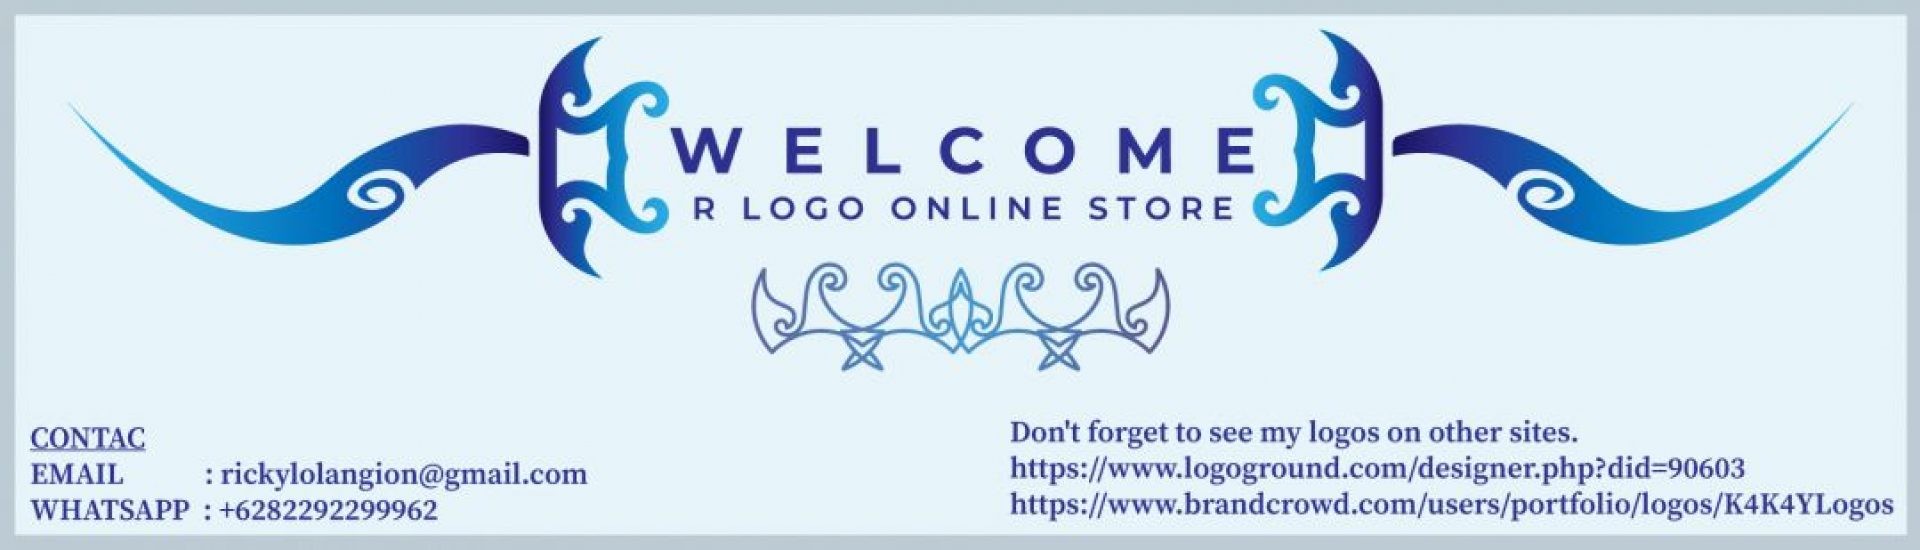 banner-store